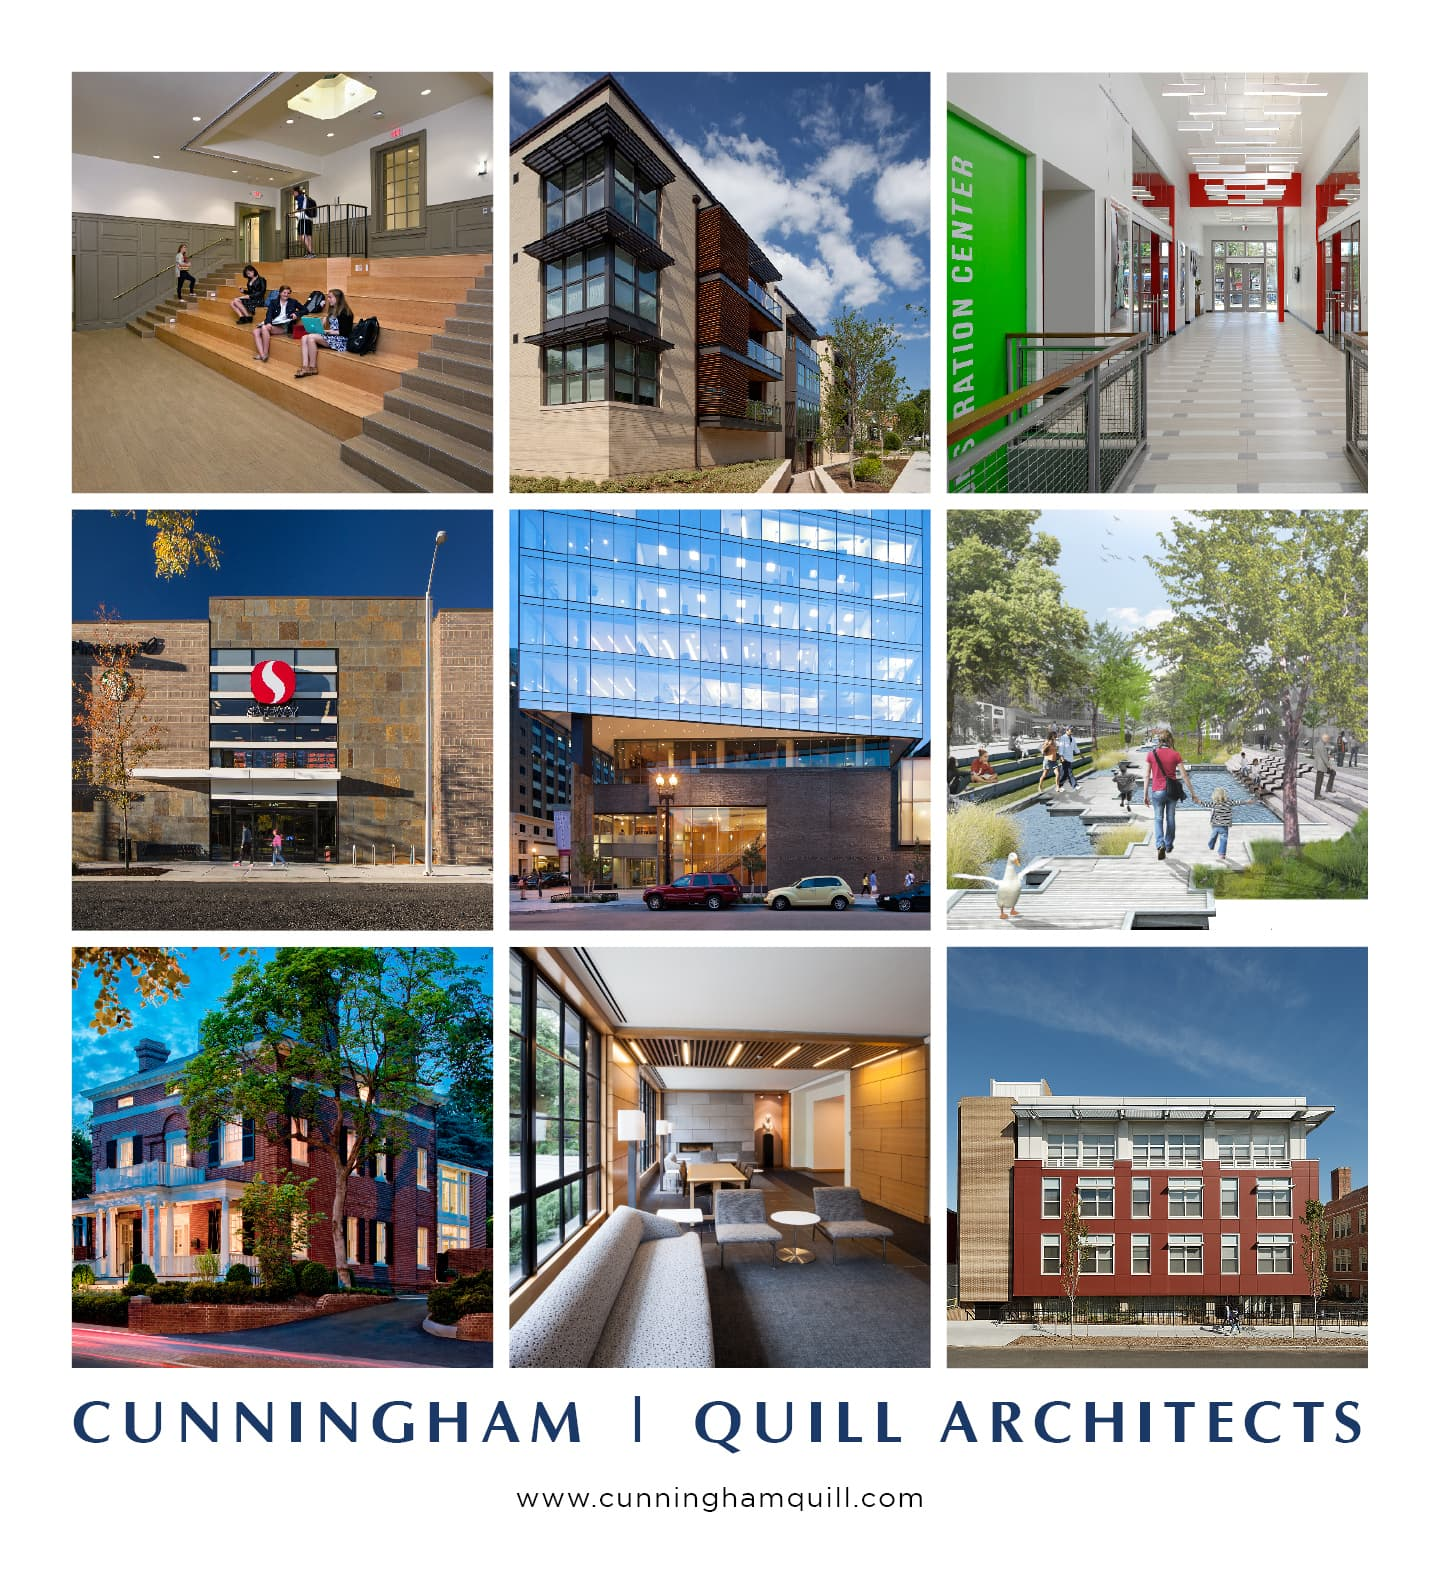 Cunningham | Quill Architects PLLC